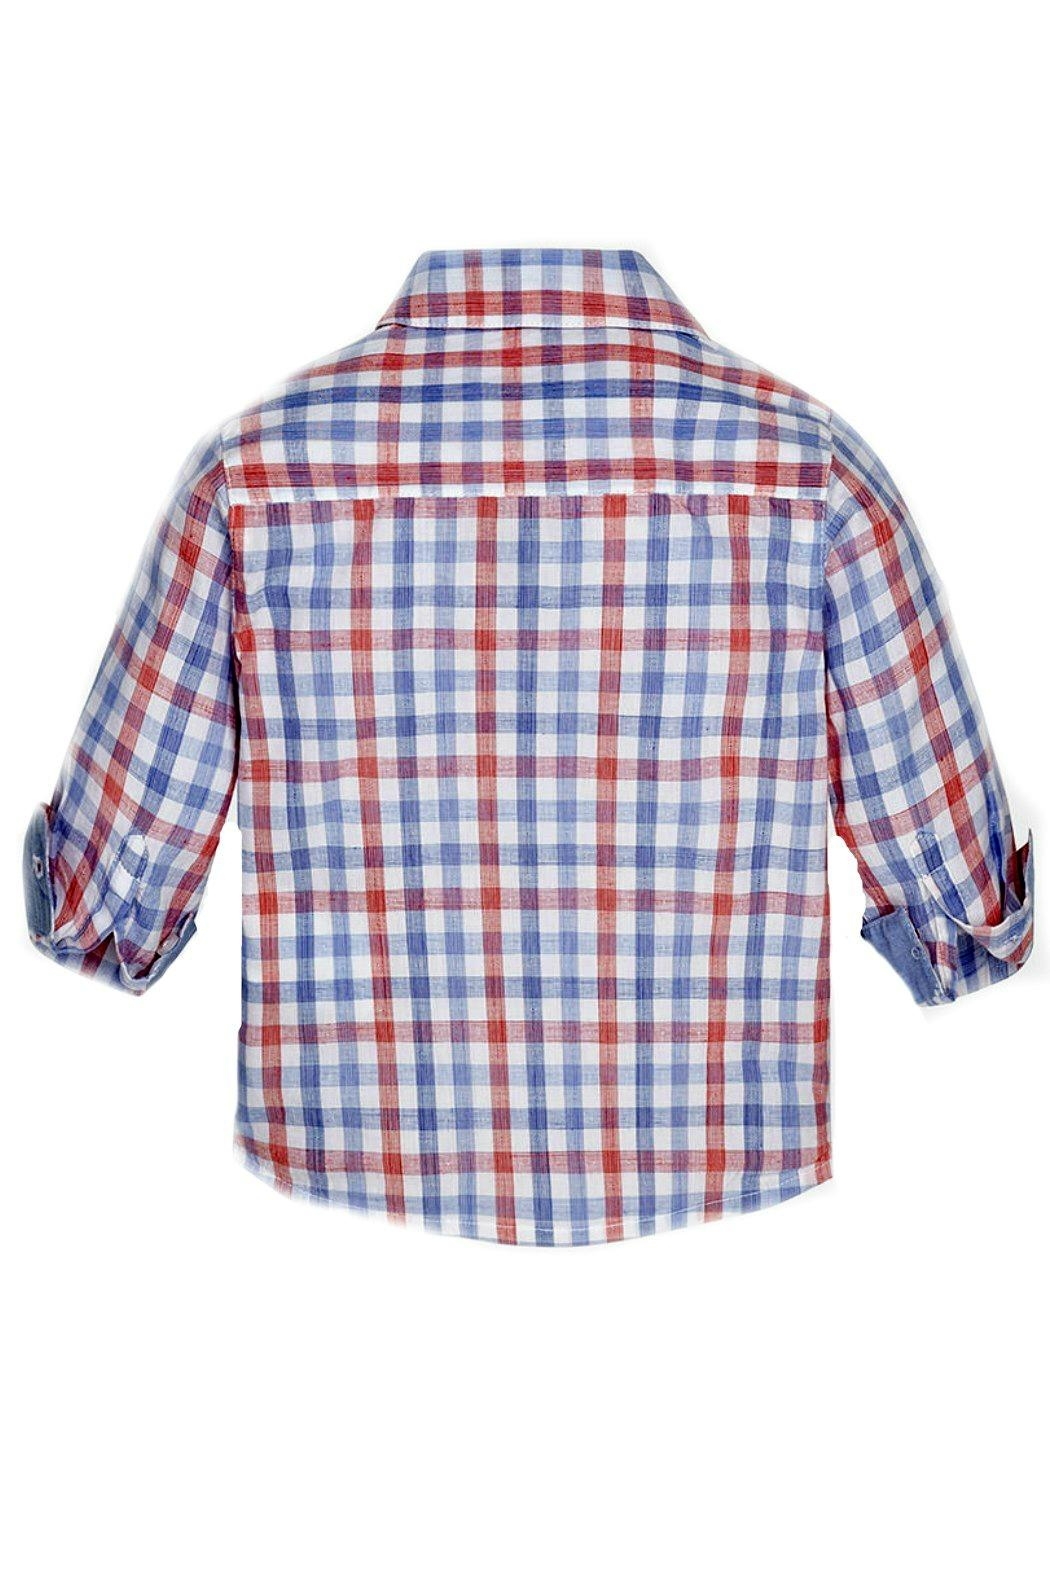 Mayoral Baby-Boy Long-Sleeve-Checked Shirt - Side Cropped Image